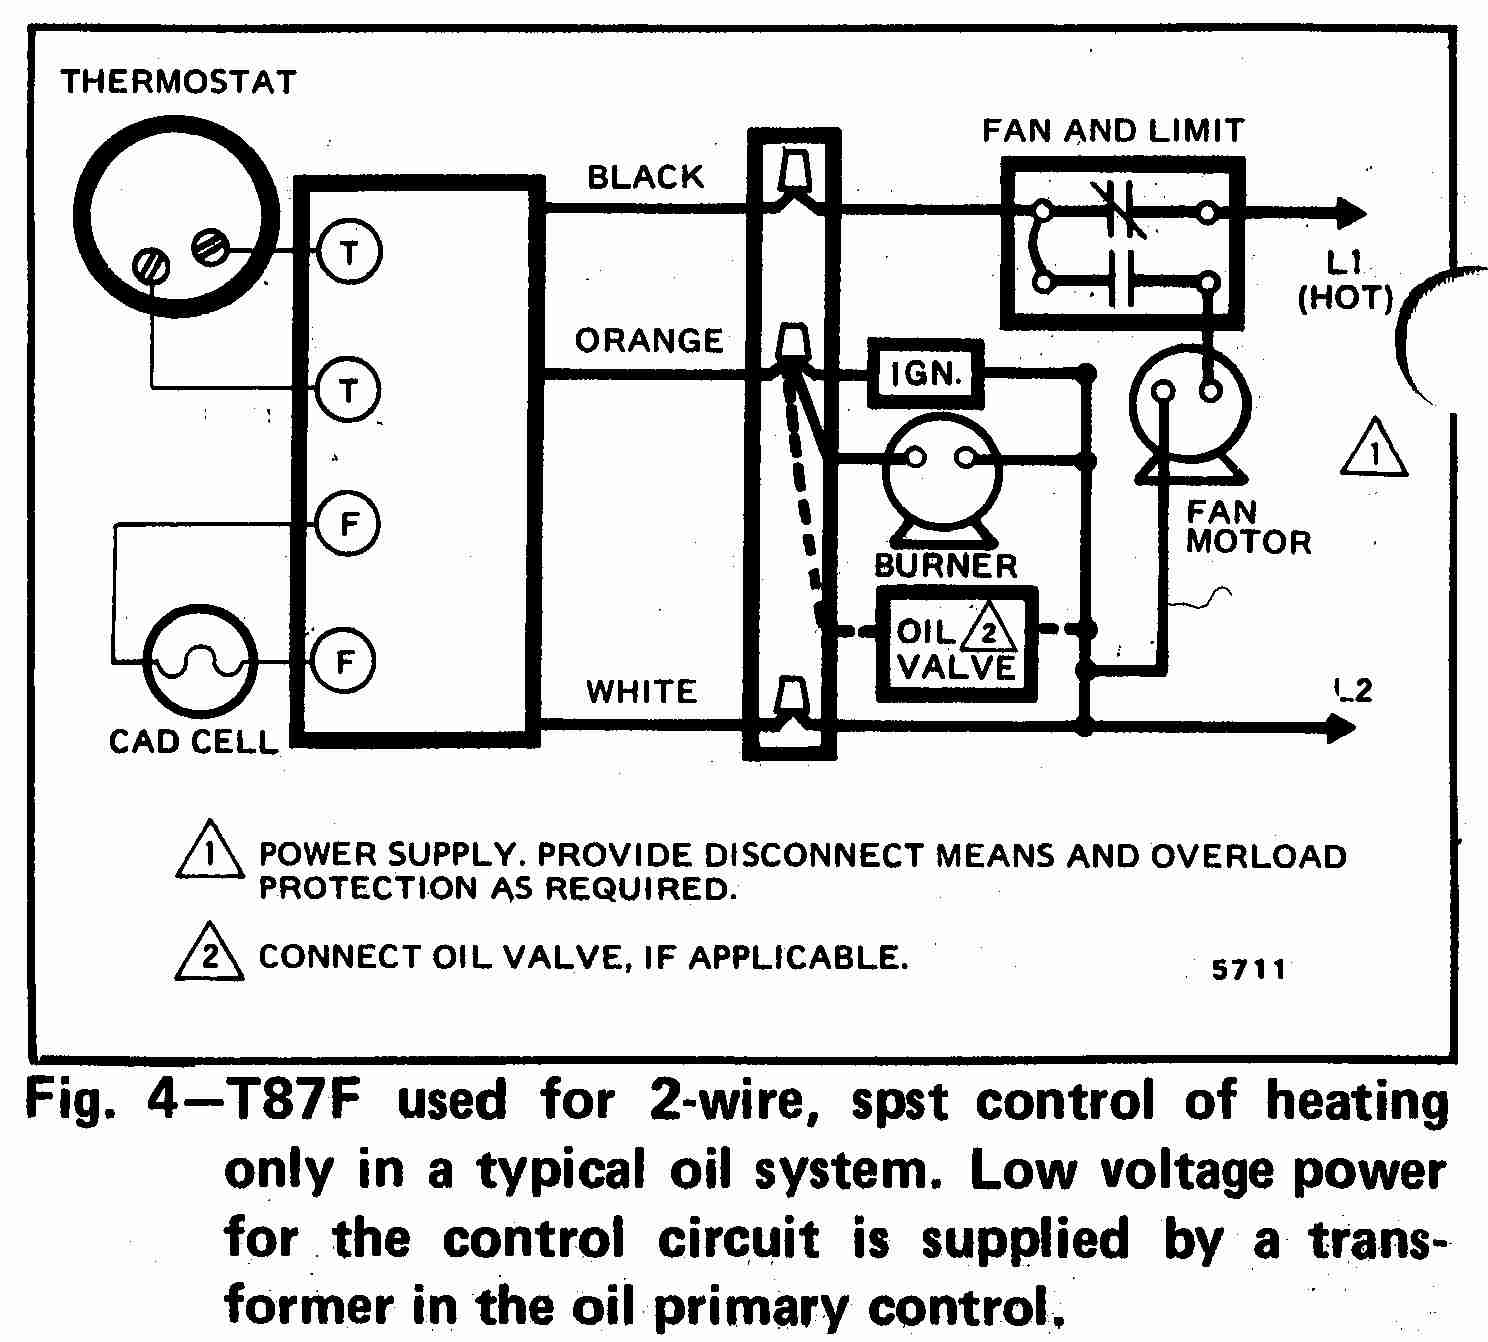 TT_T87F_0002_2W_DJF room thermostat wiring diagrams for hvac systems wiring diagram for central air conditioning at readyjetset.co